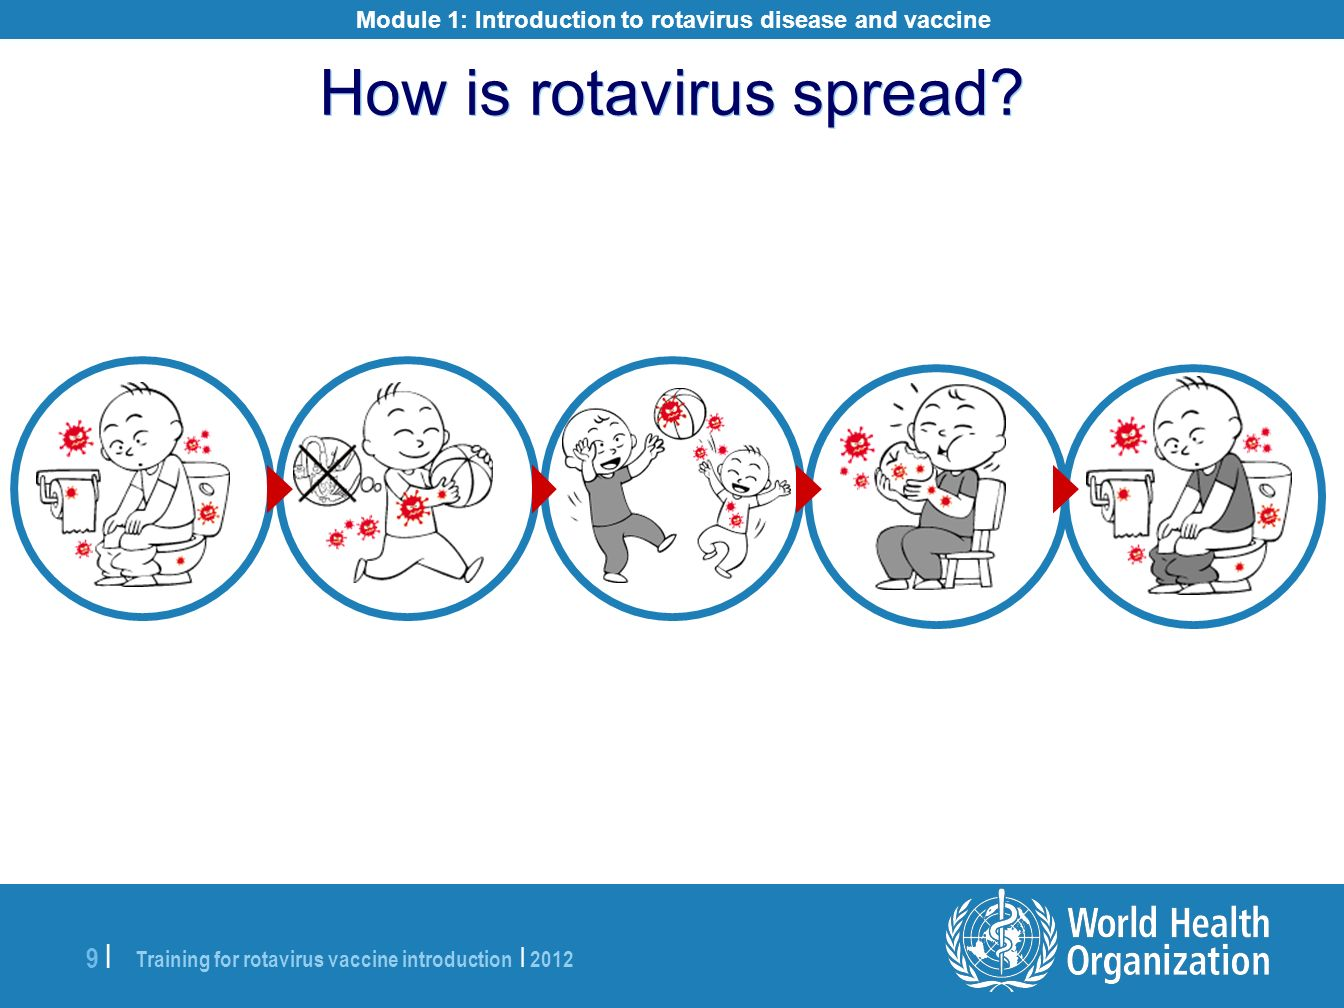 How is rotavirus spread